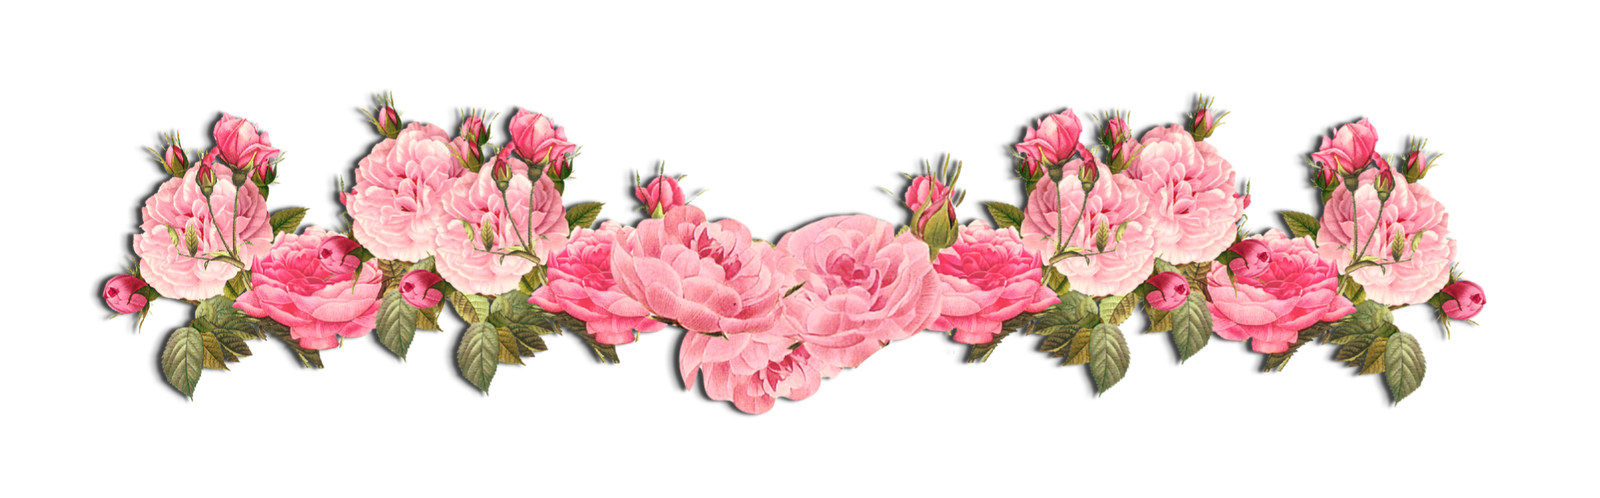 Xxlonely heartxx ouo deviantart. Row of flowers png clip transparent library